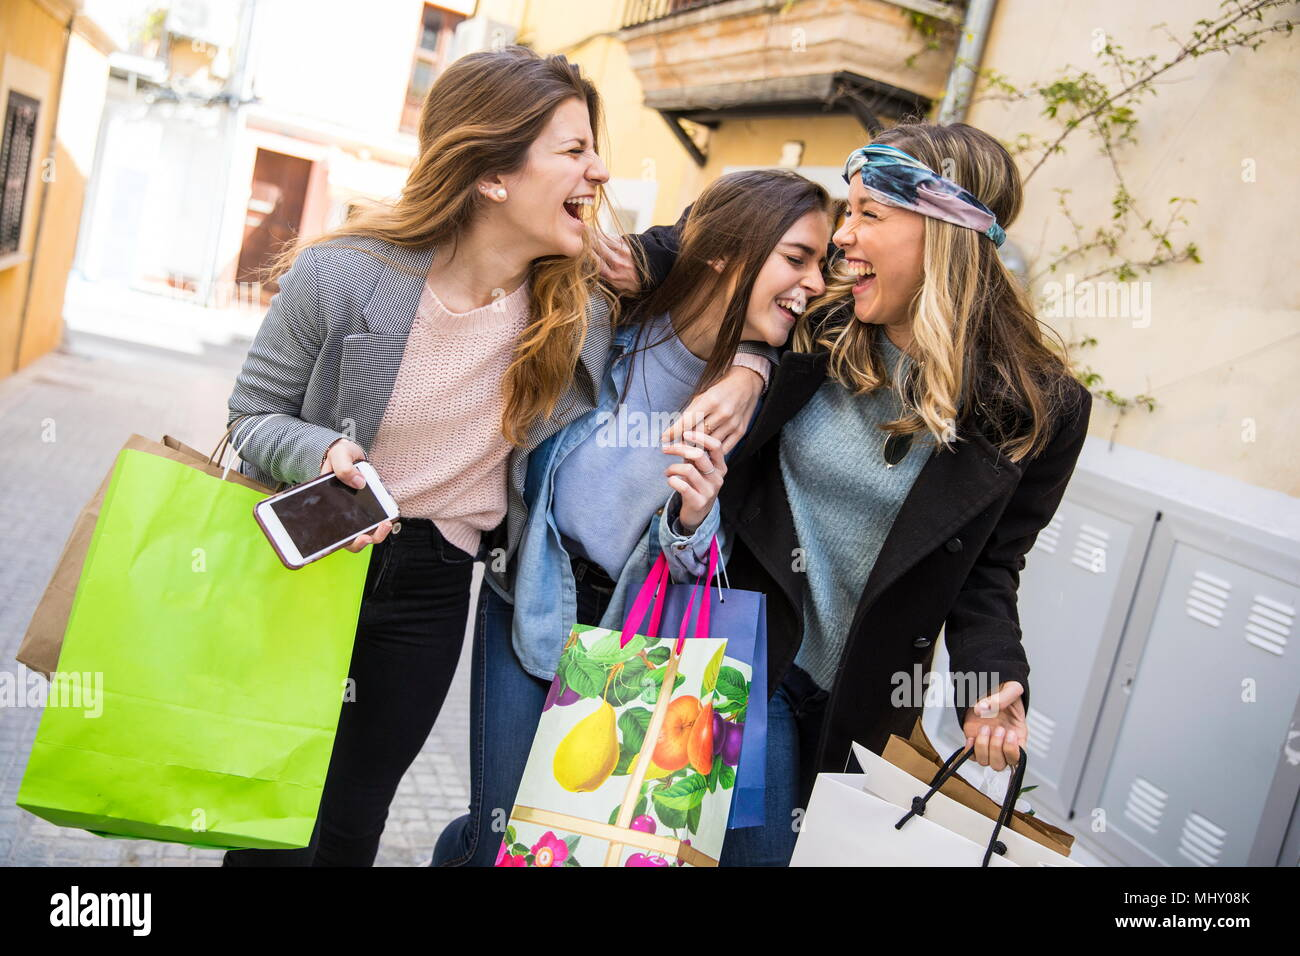 Friends out shopping and laughing in street - Stock Image